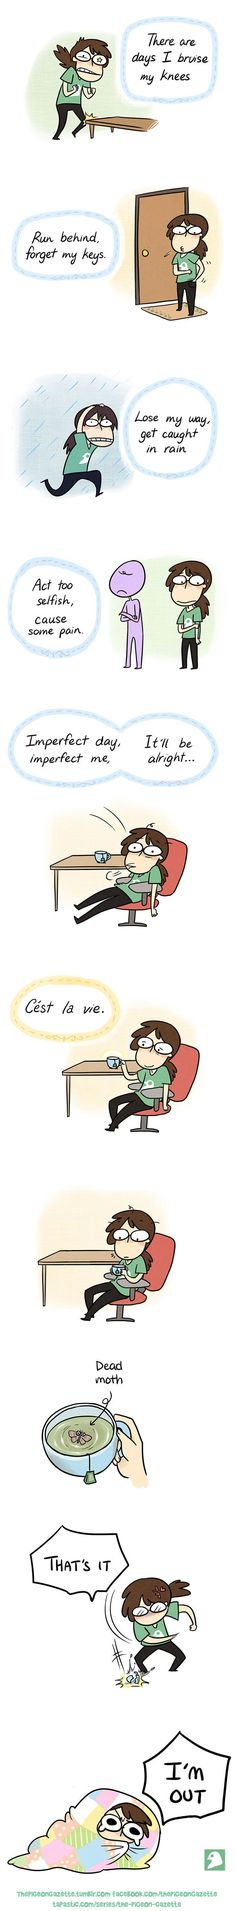 "10+ Hilarious Comics For Socially Awkward People @Warriorcatslove- ""C'est la vie It is the life You're welcome non French speaking people"""